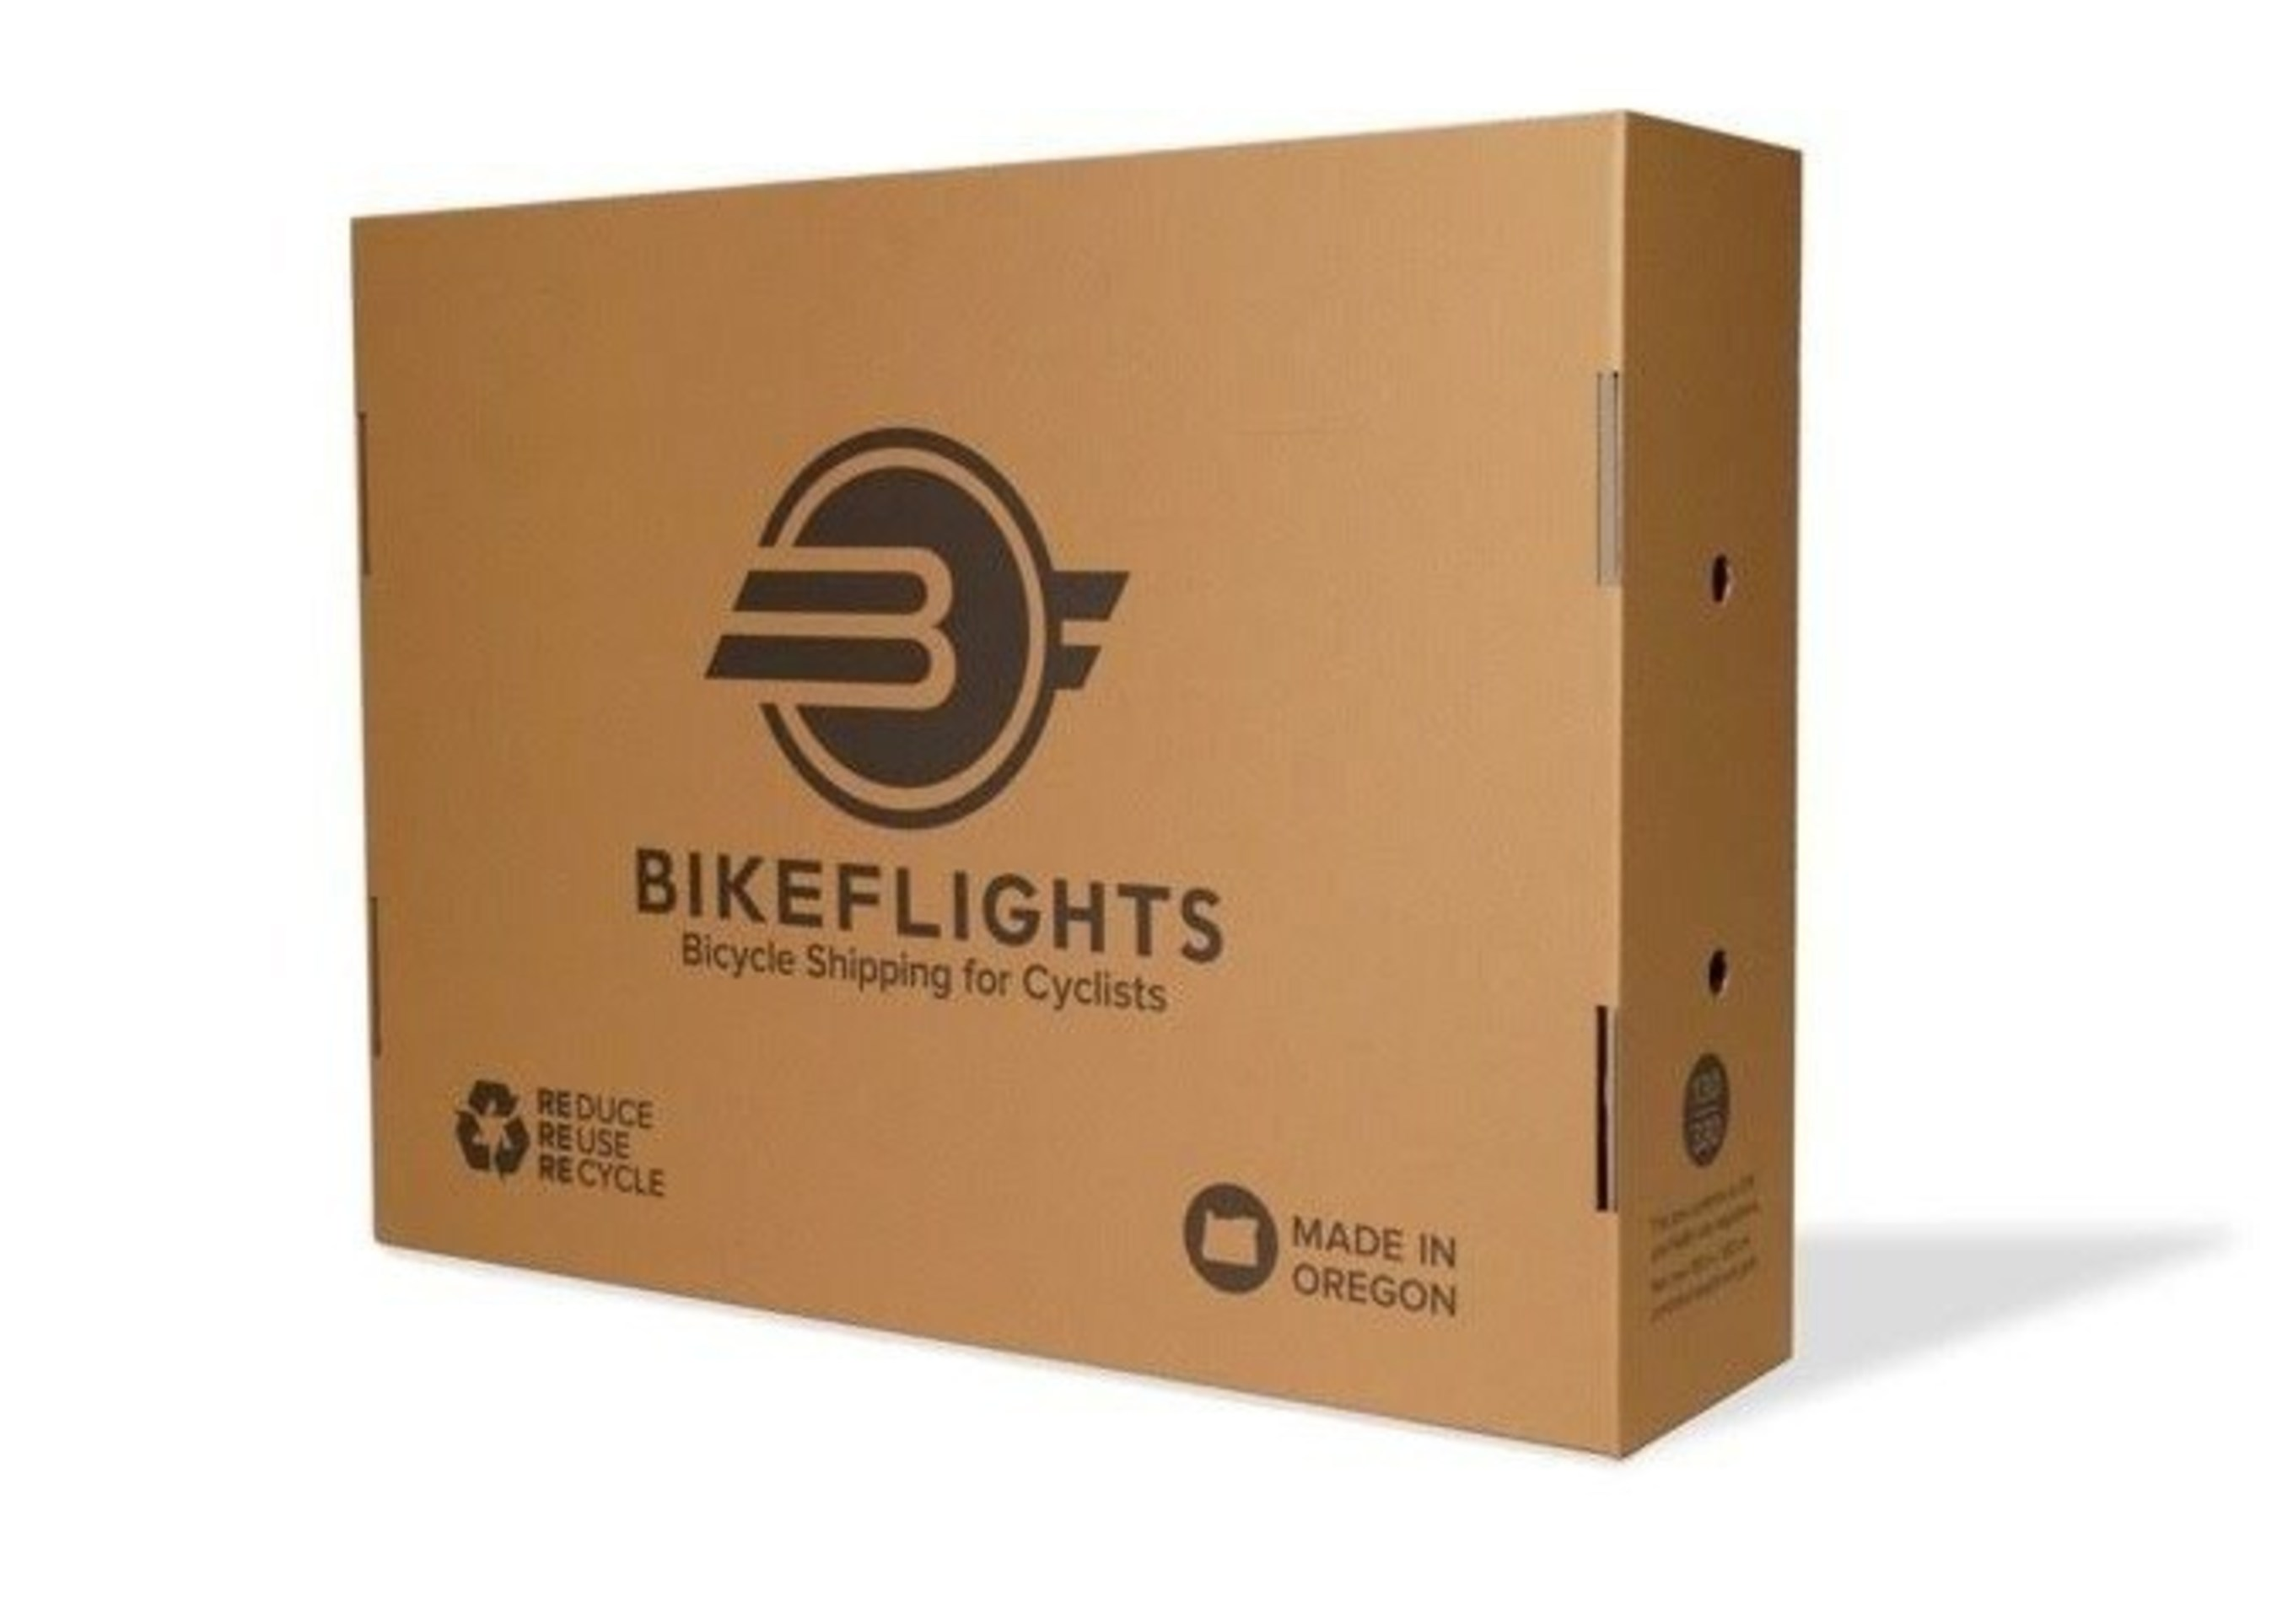 BikeFlights.com's new cardboard box for bike shipping is now available for purchase.